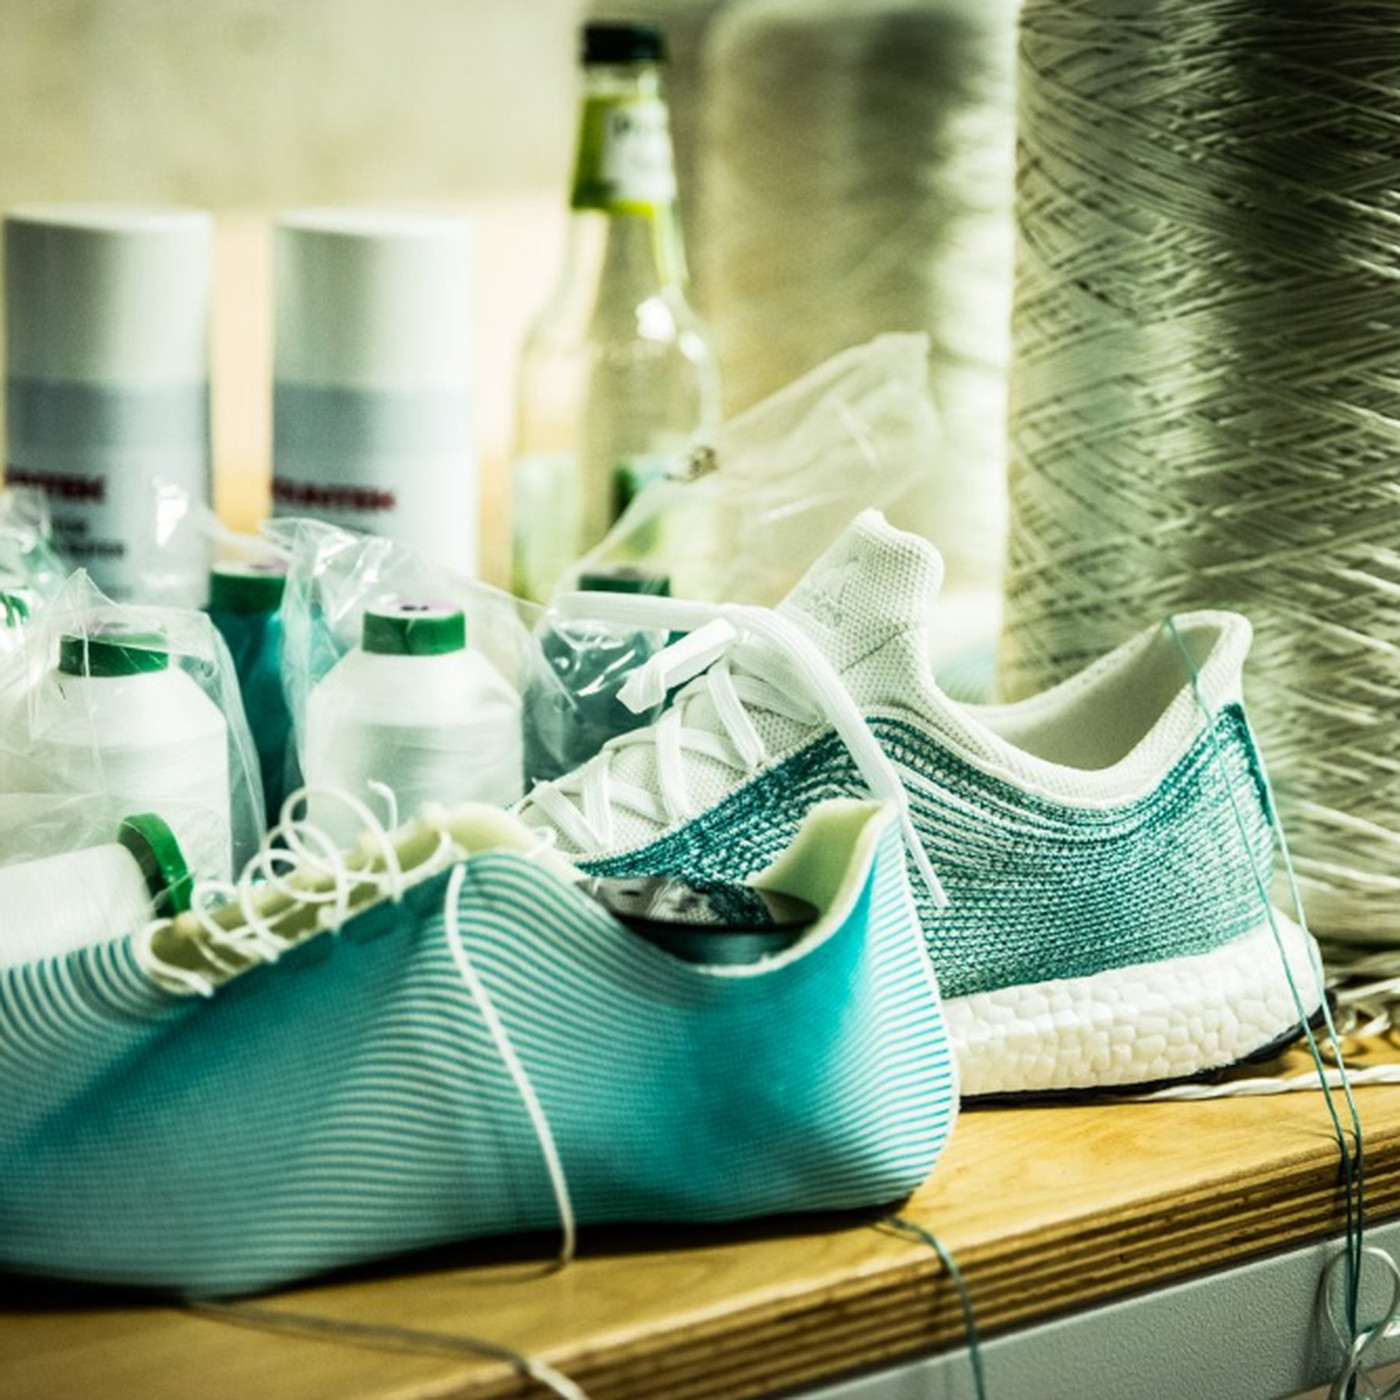 df3d4ae27 Adidas' limited edition sneakers are made from recycled ocean waste - The  Verge